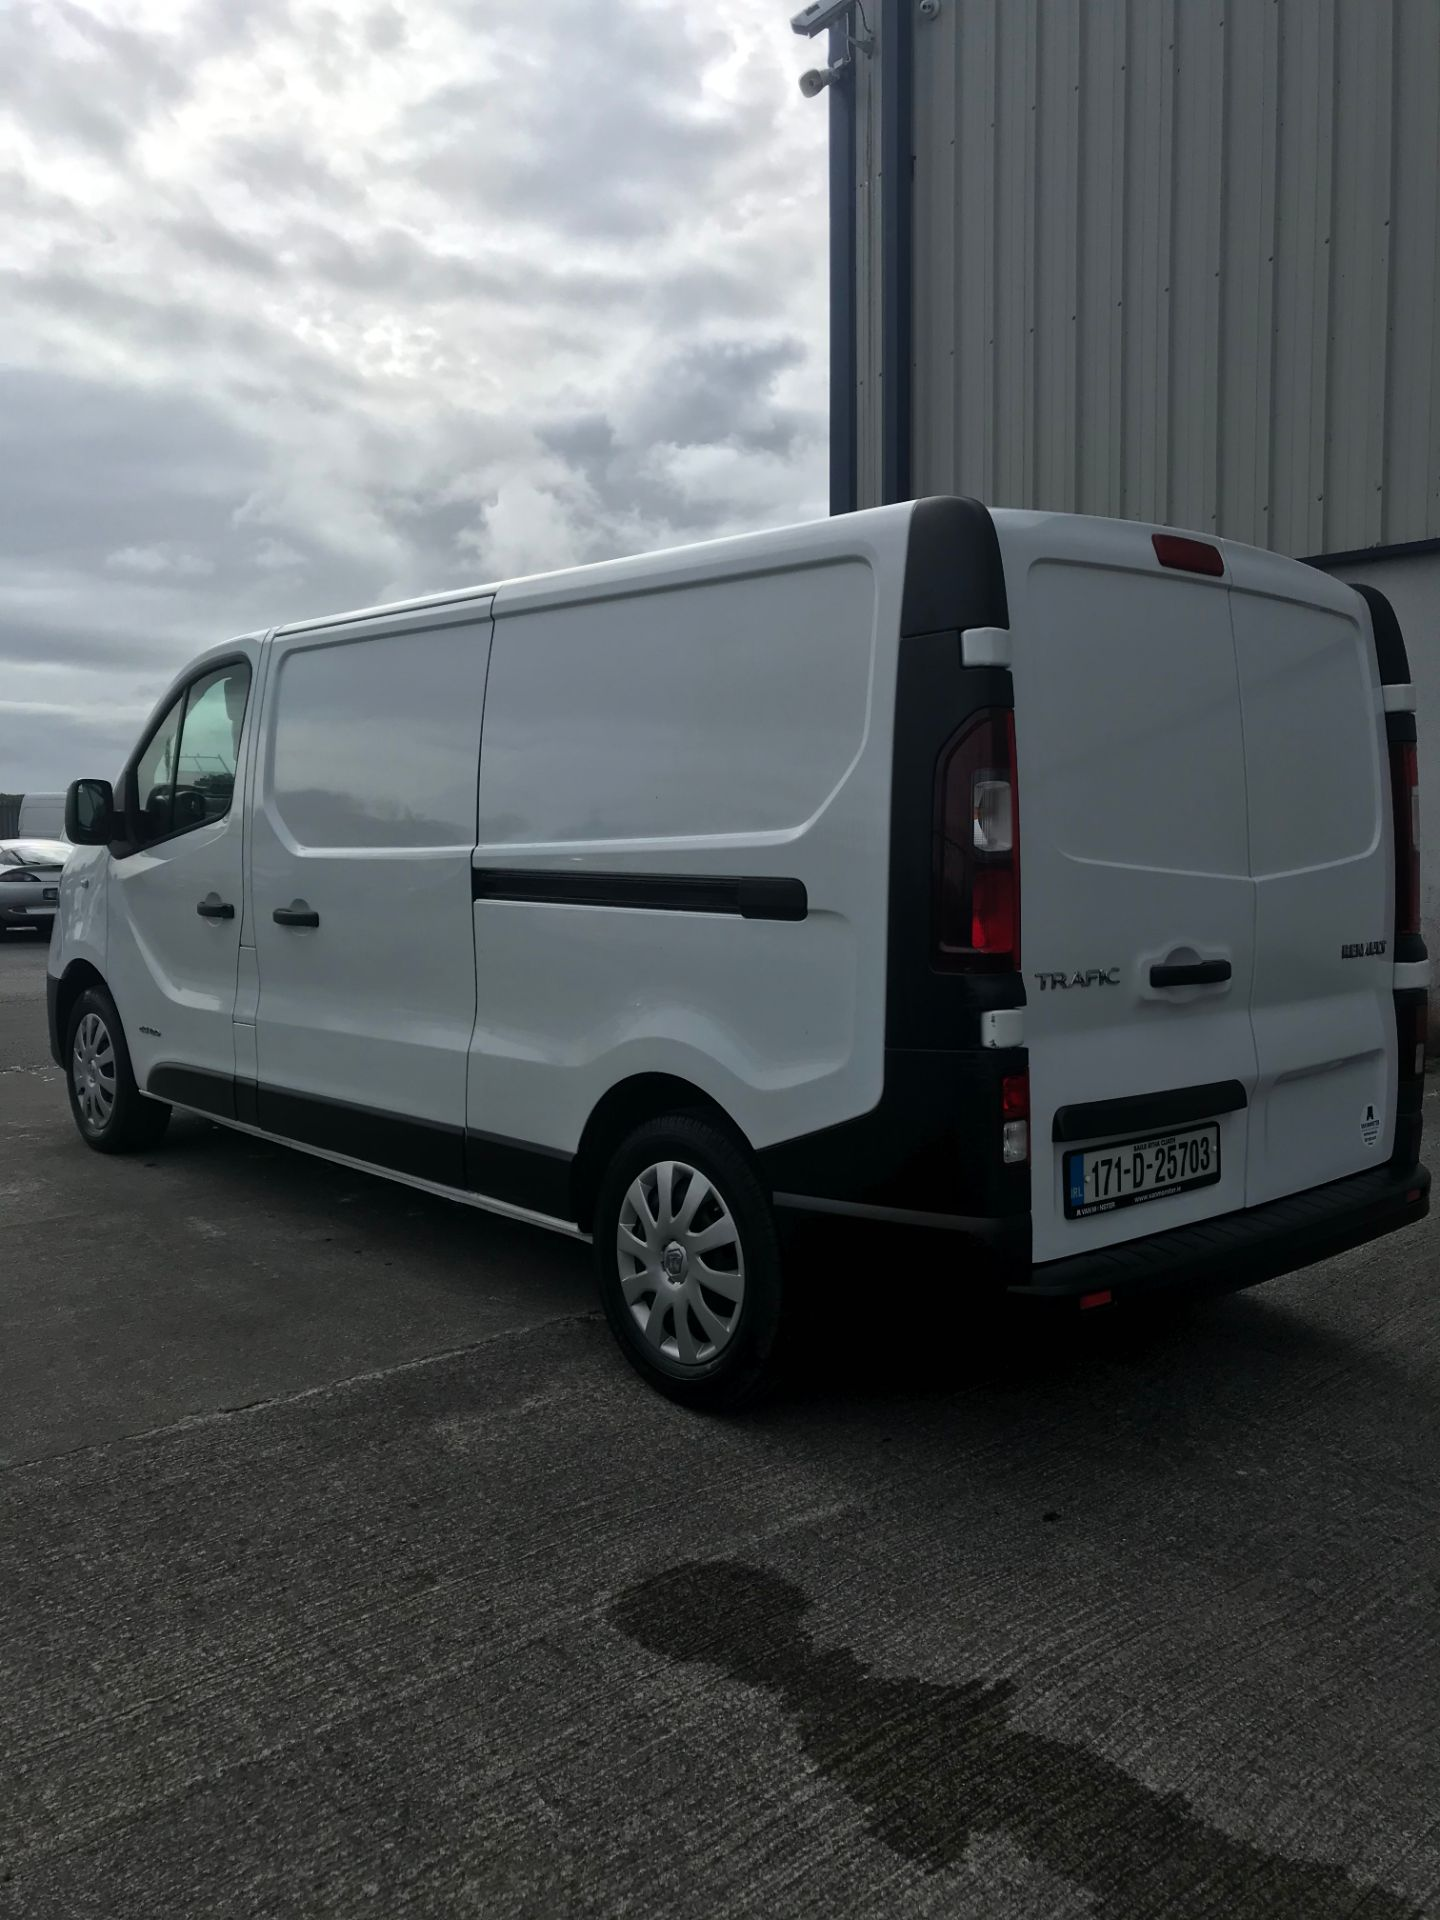 2017 Renault Trafic LL29 DCI 120 Business 3DR (171D25703) Image 6